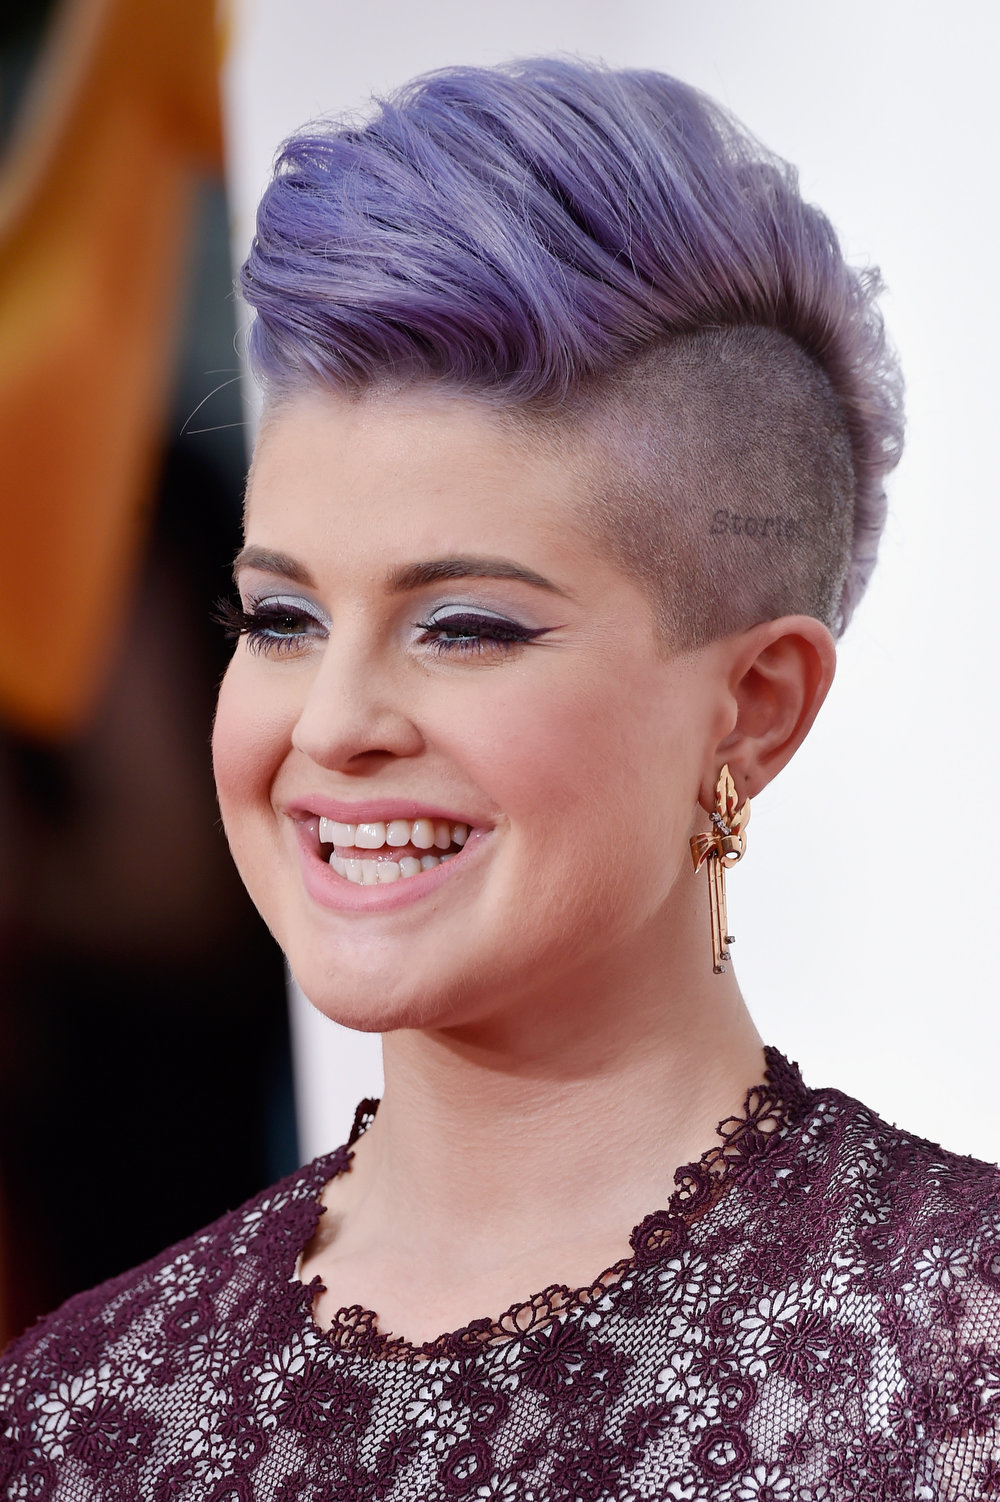 . TV personality Kelly Osbourne attends the 66th Annual Primetime Emmy Awards held at Nokia Theatre L.A. Live on August 25, 2014 in Los Angeles, California.  (Photo by Frazer Harrison/Getty Images)